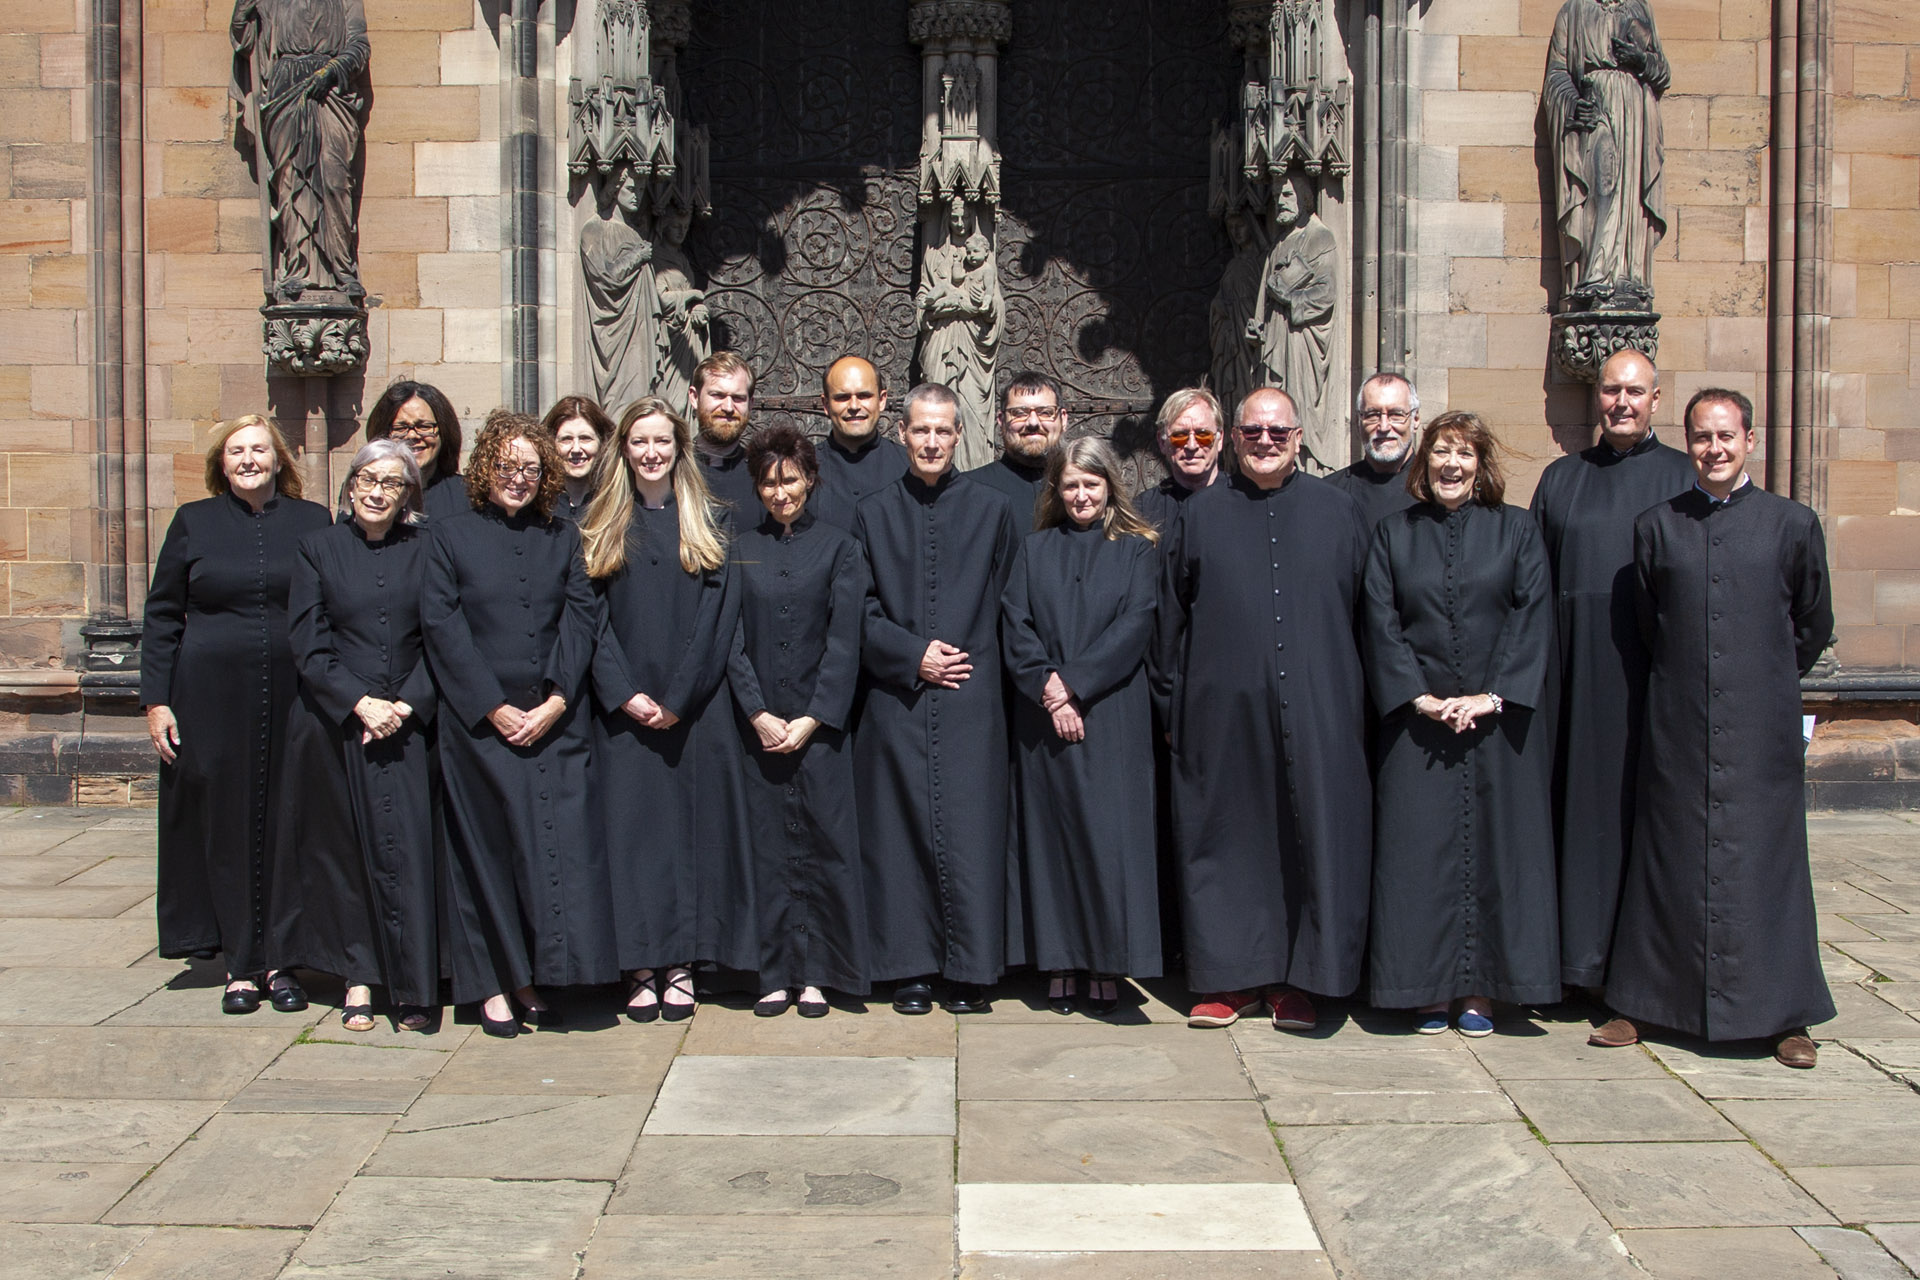 Open #NewRevs 2019 to be ordained